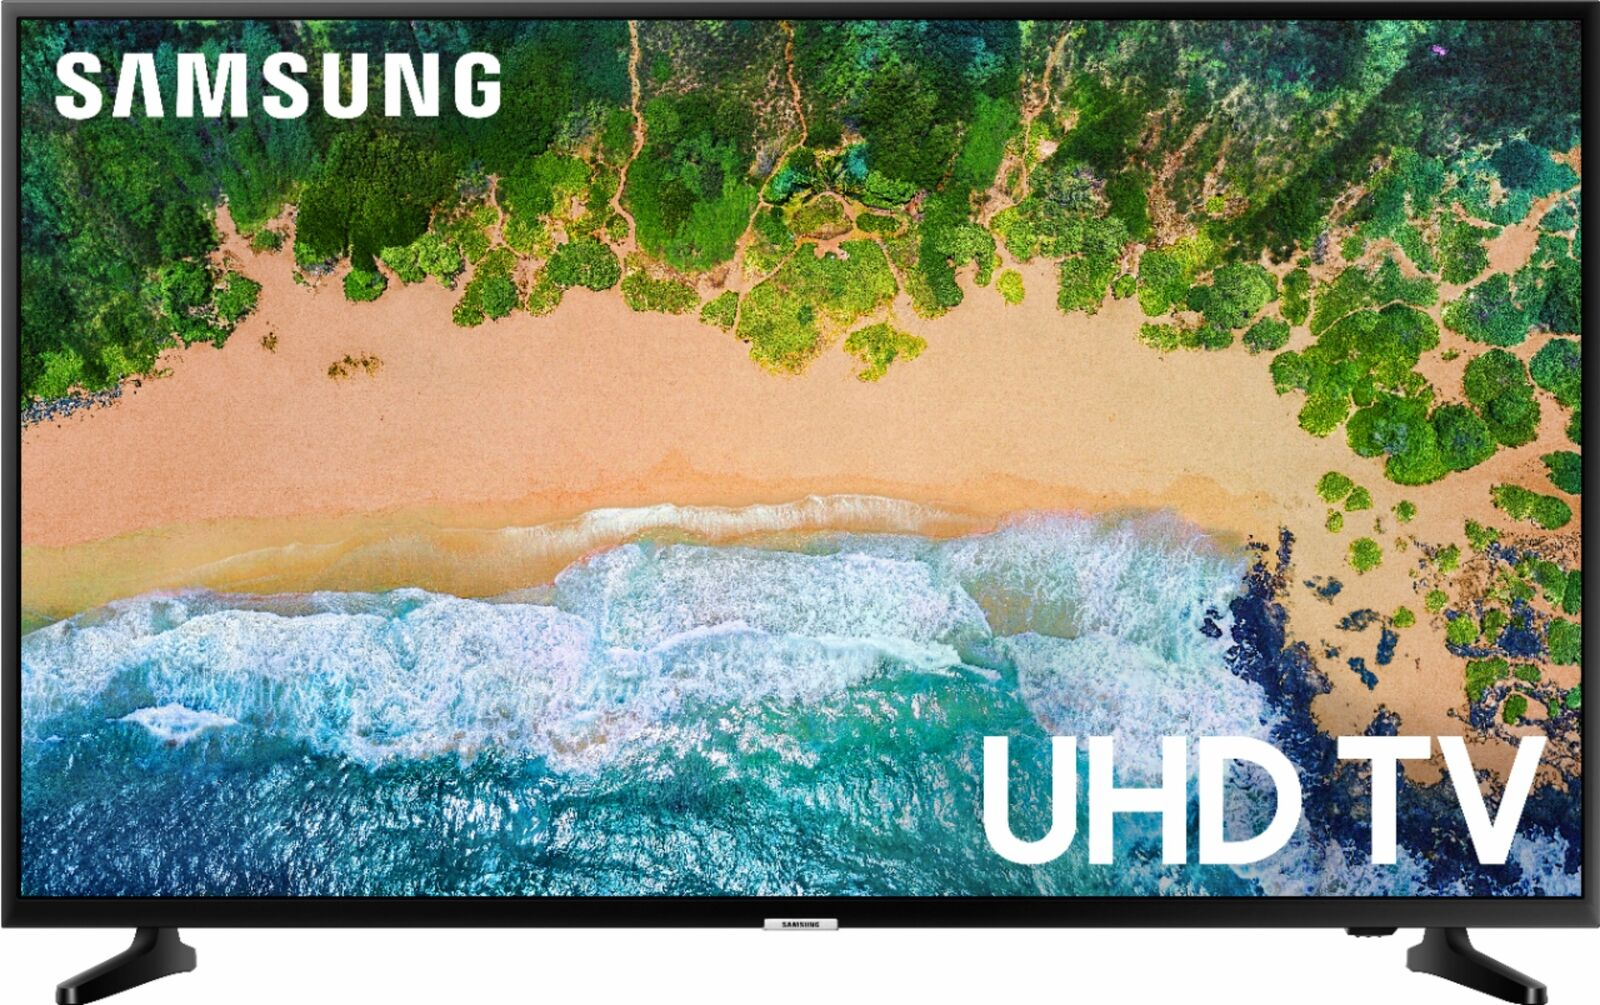 Samsung – 50″ Class – LED – NU6900 Series – 2160p – Smart – 4K UHD TV with HDR